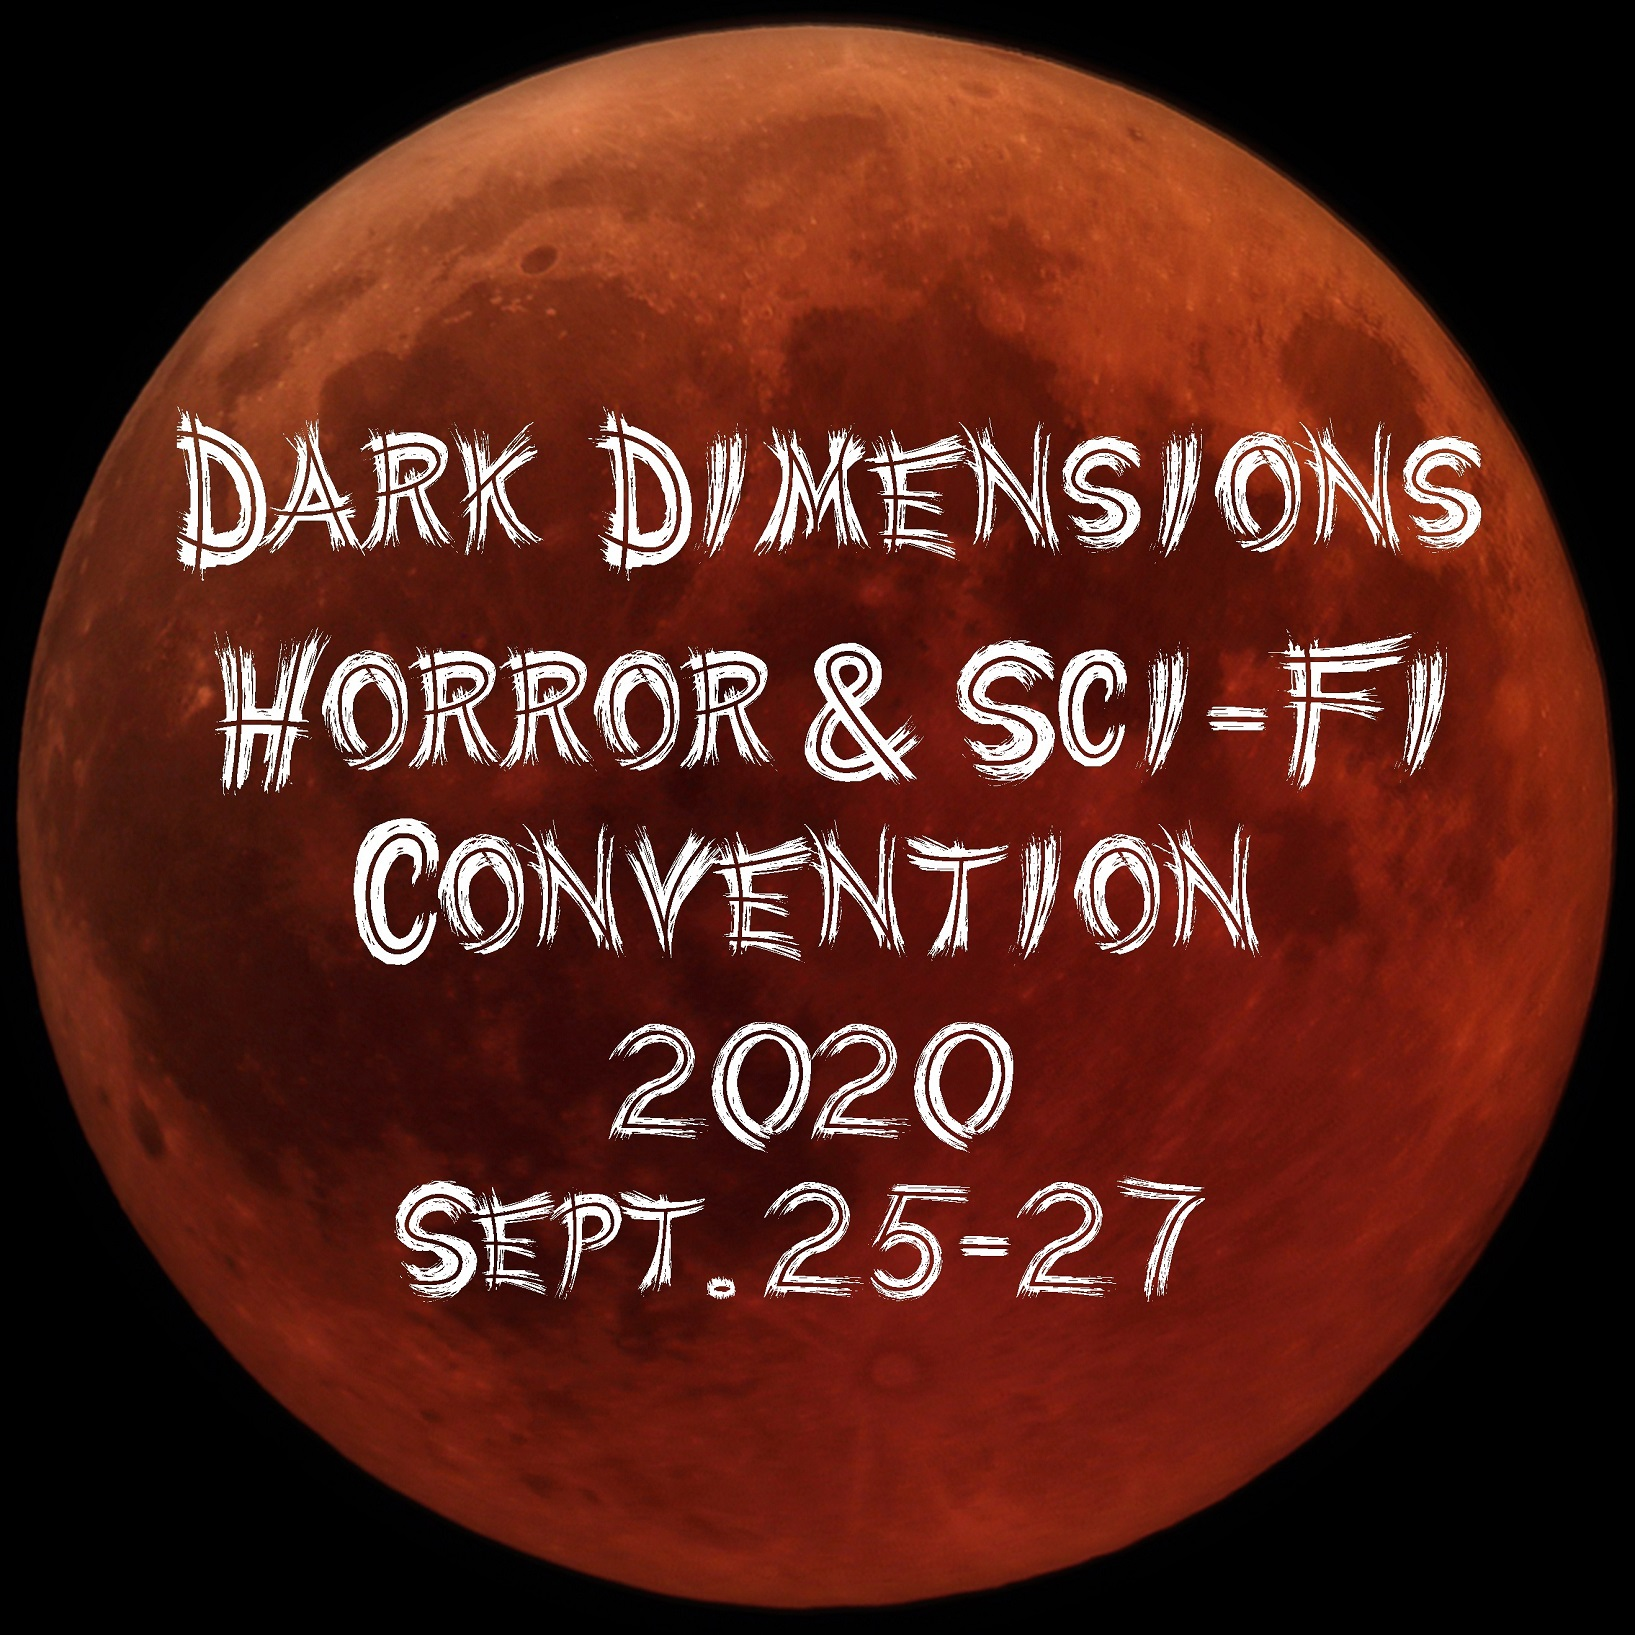 Dark Dimensions 2020 Dates Reveal